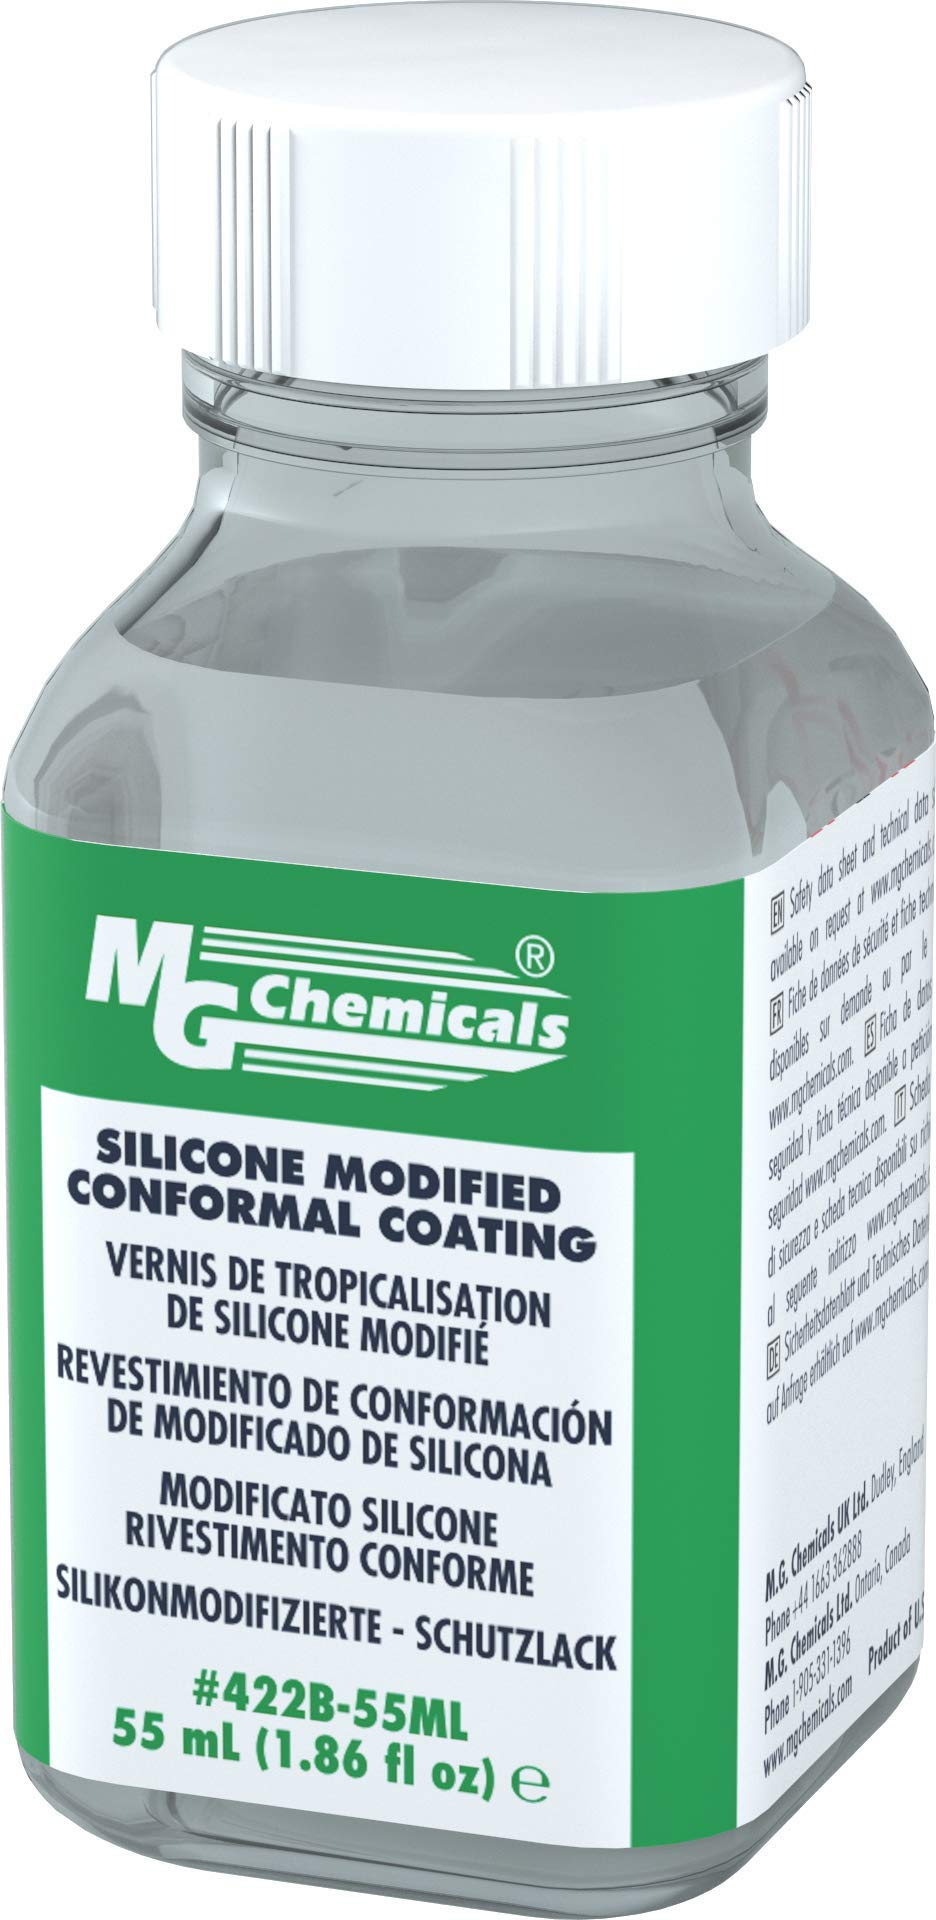 MG Chemicals SILICONE CONFORMAL COATING, 55ml botella de líquido, transparente product image